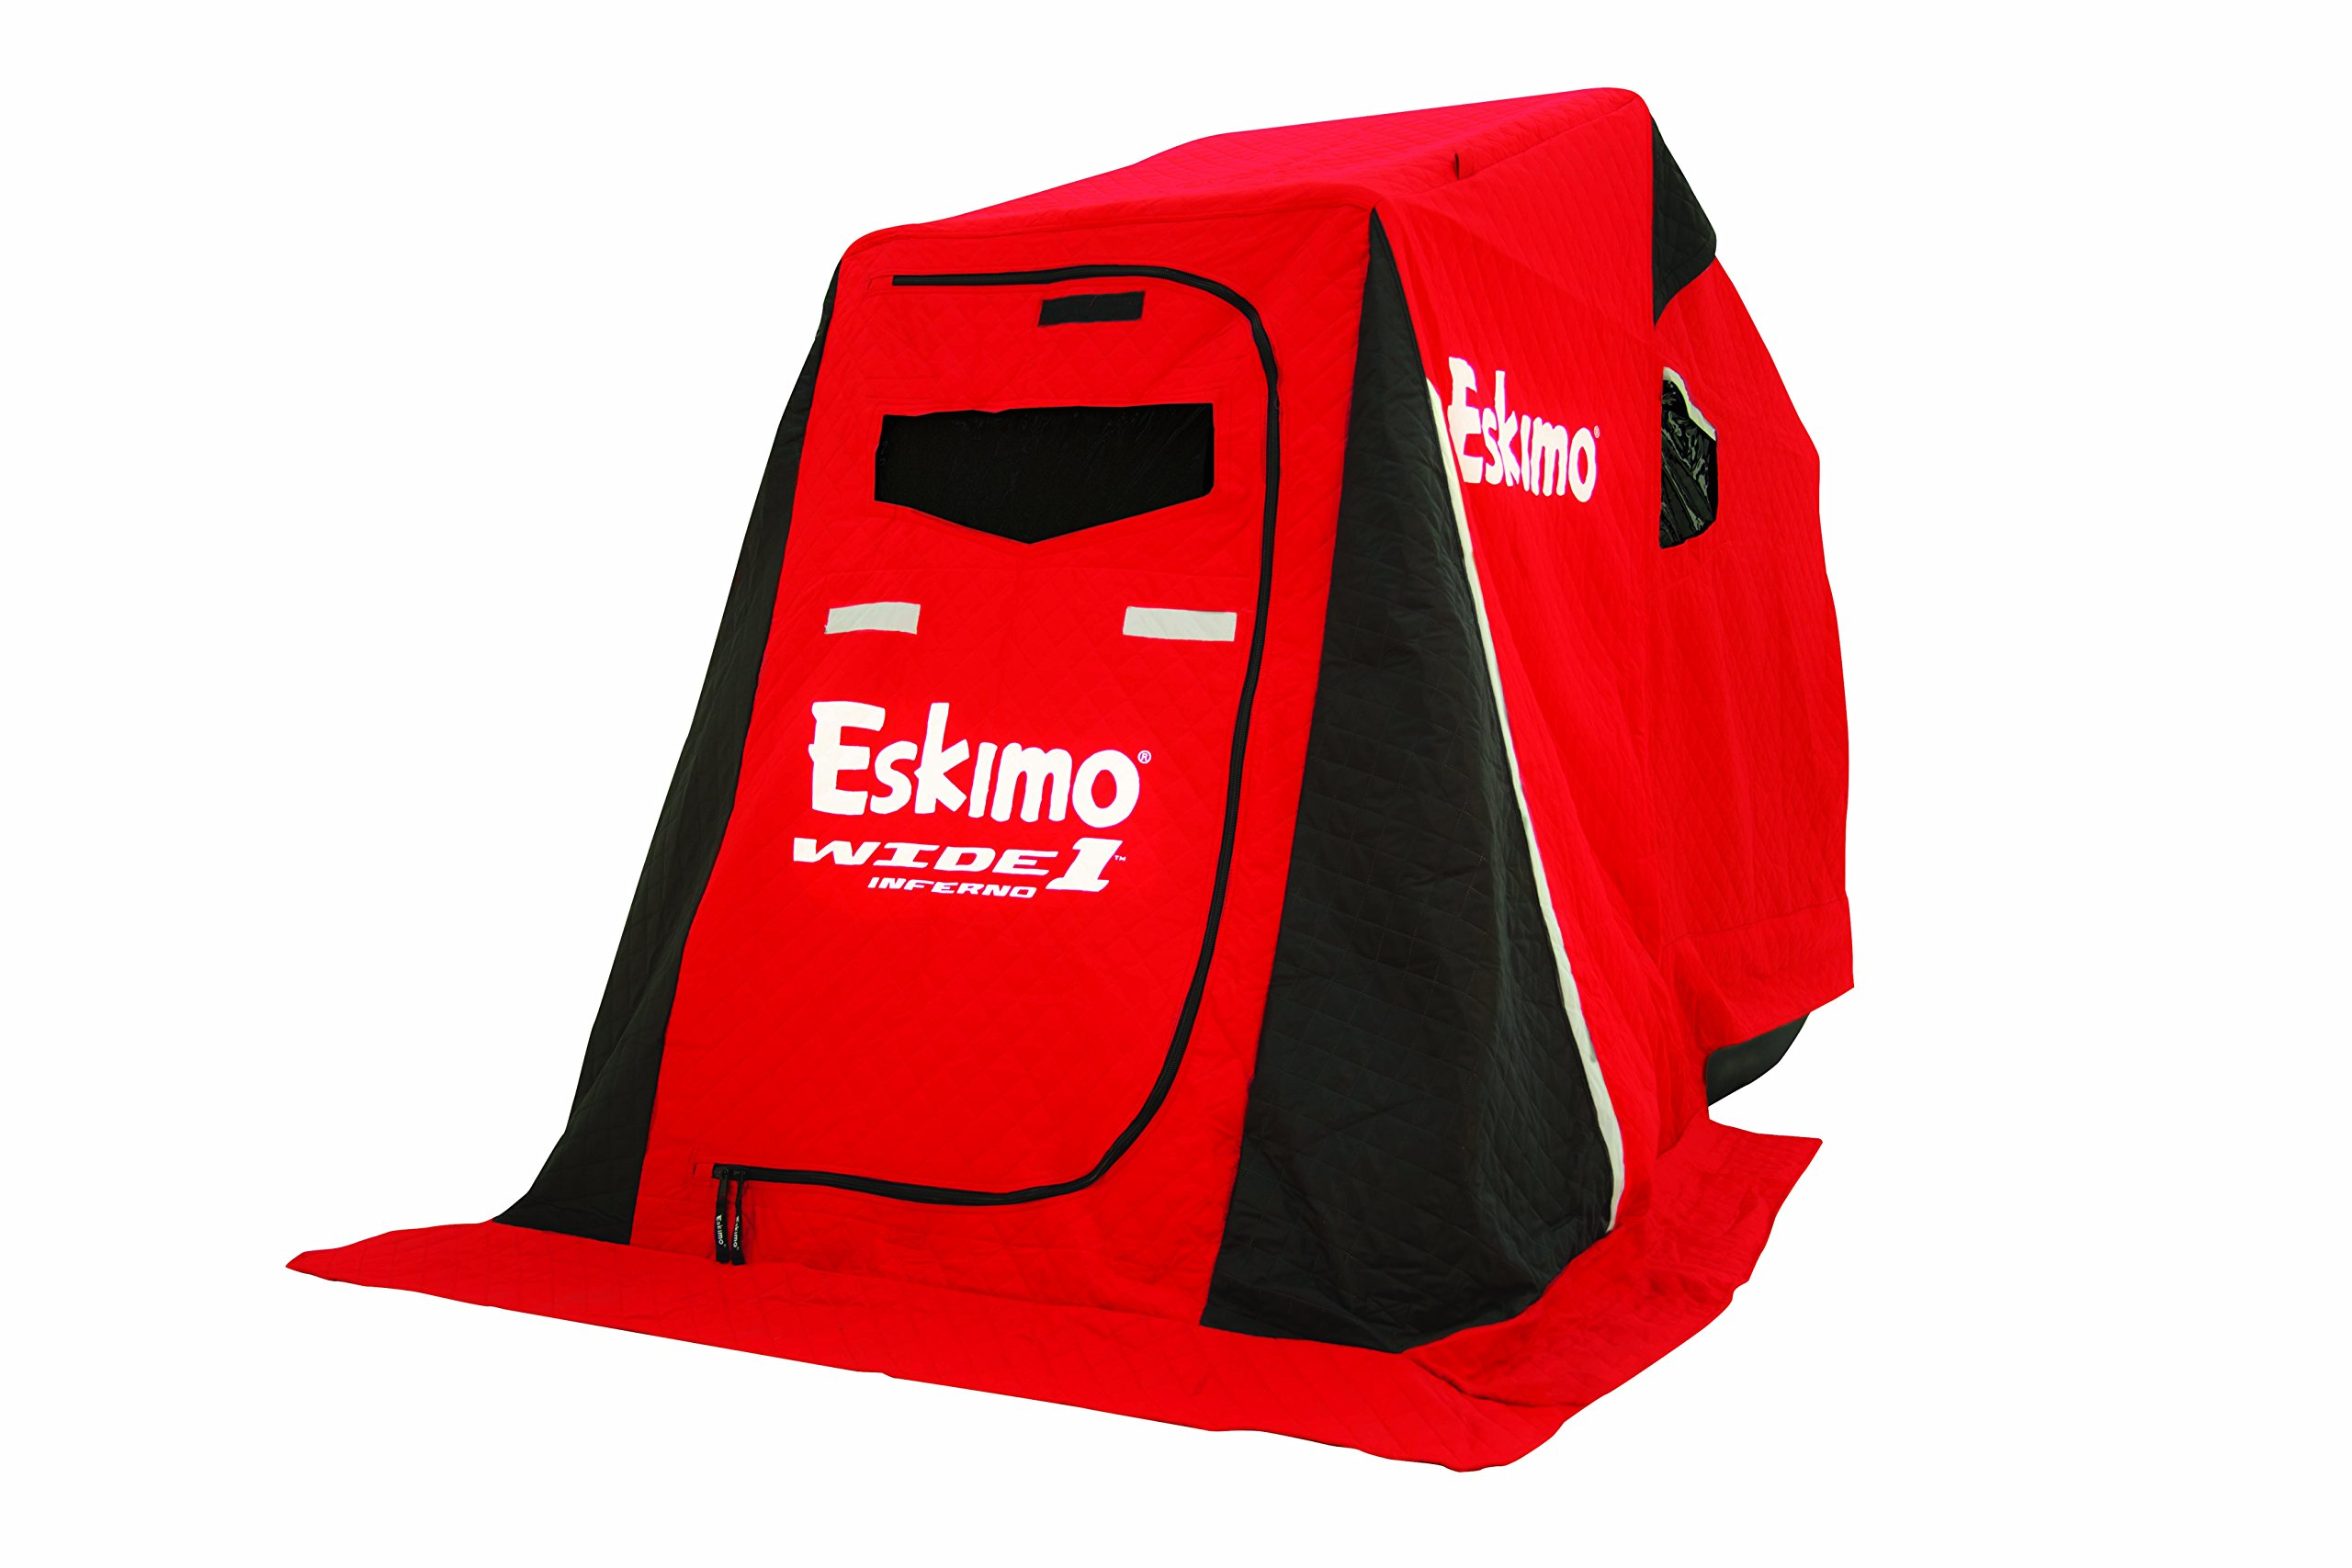 Eskimo 15350 Wide 1 Inferno Insulated Ice Shelter with Swivel Seat